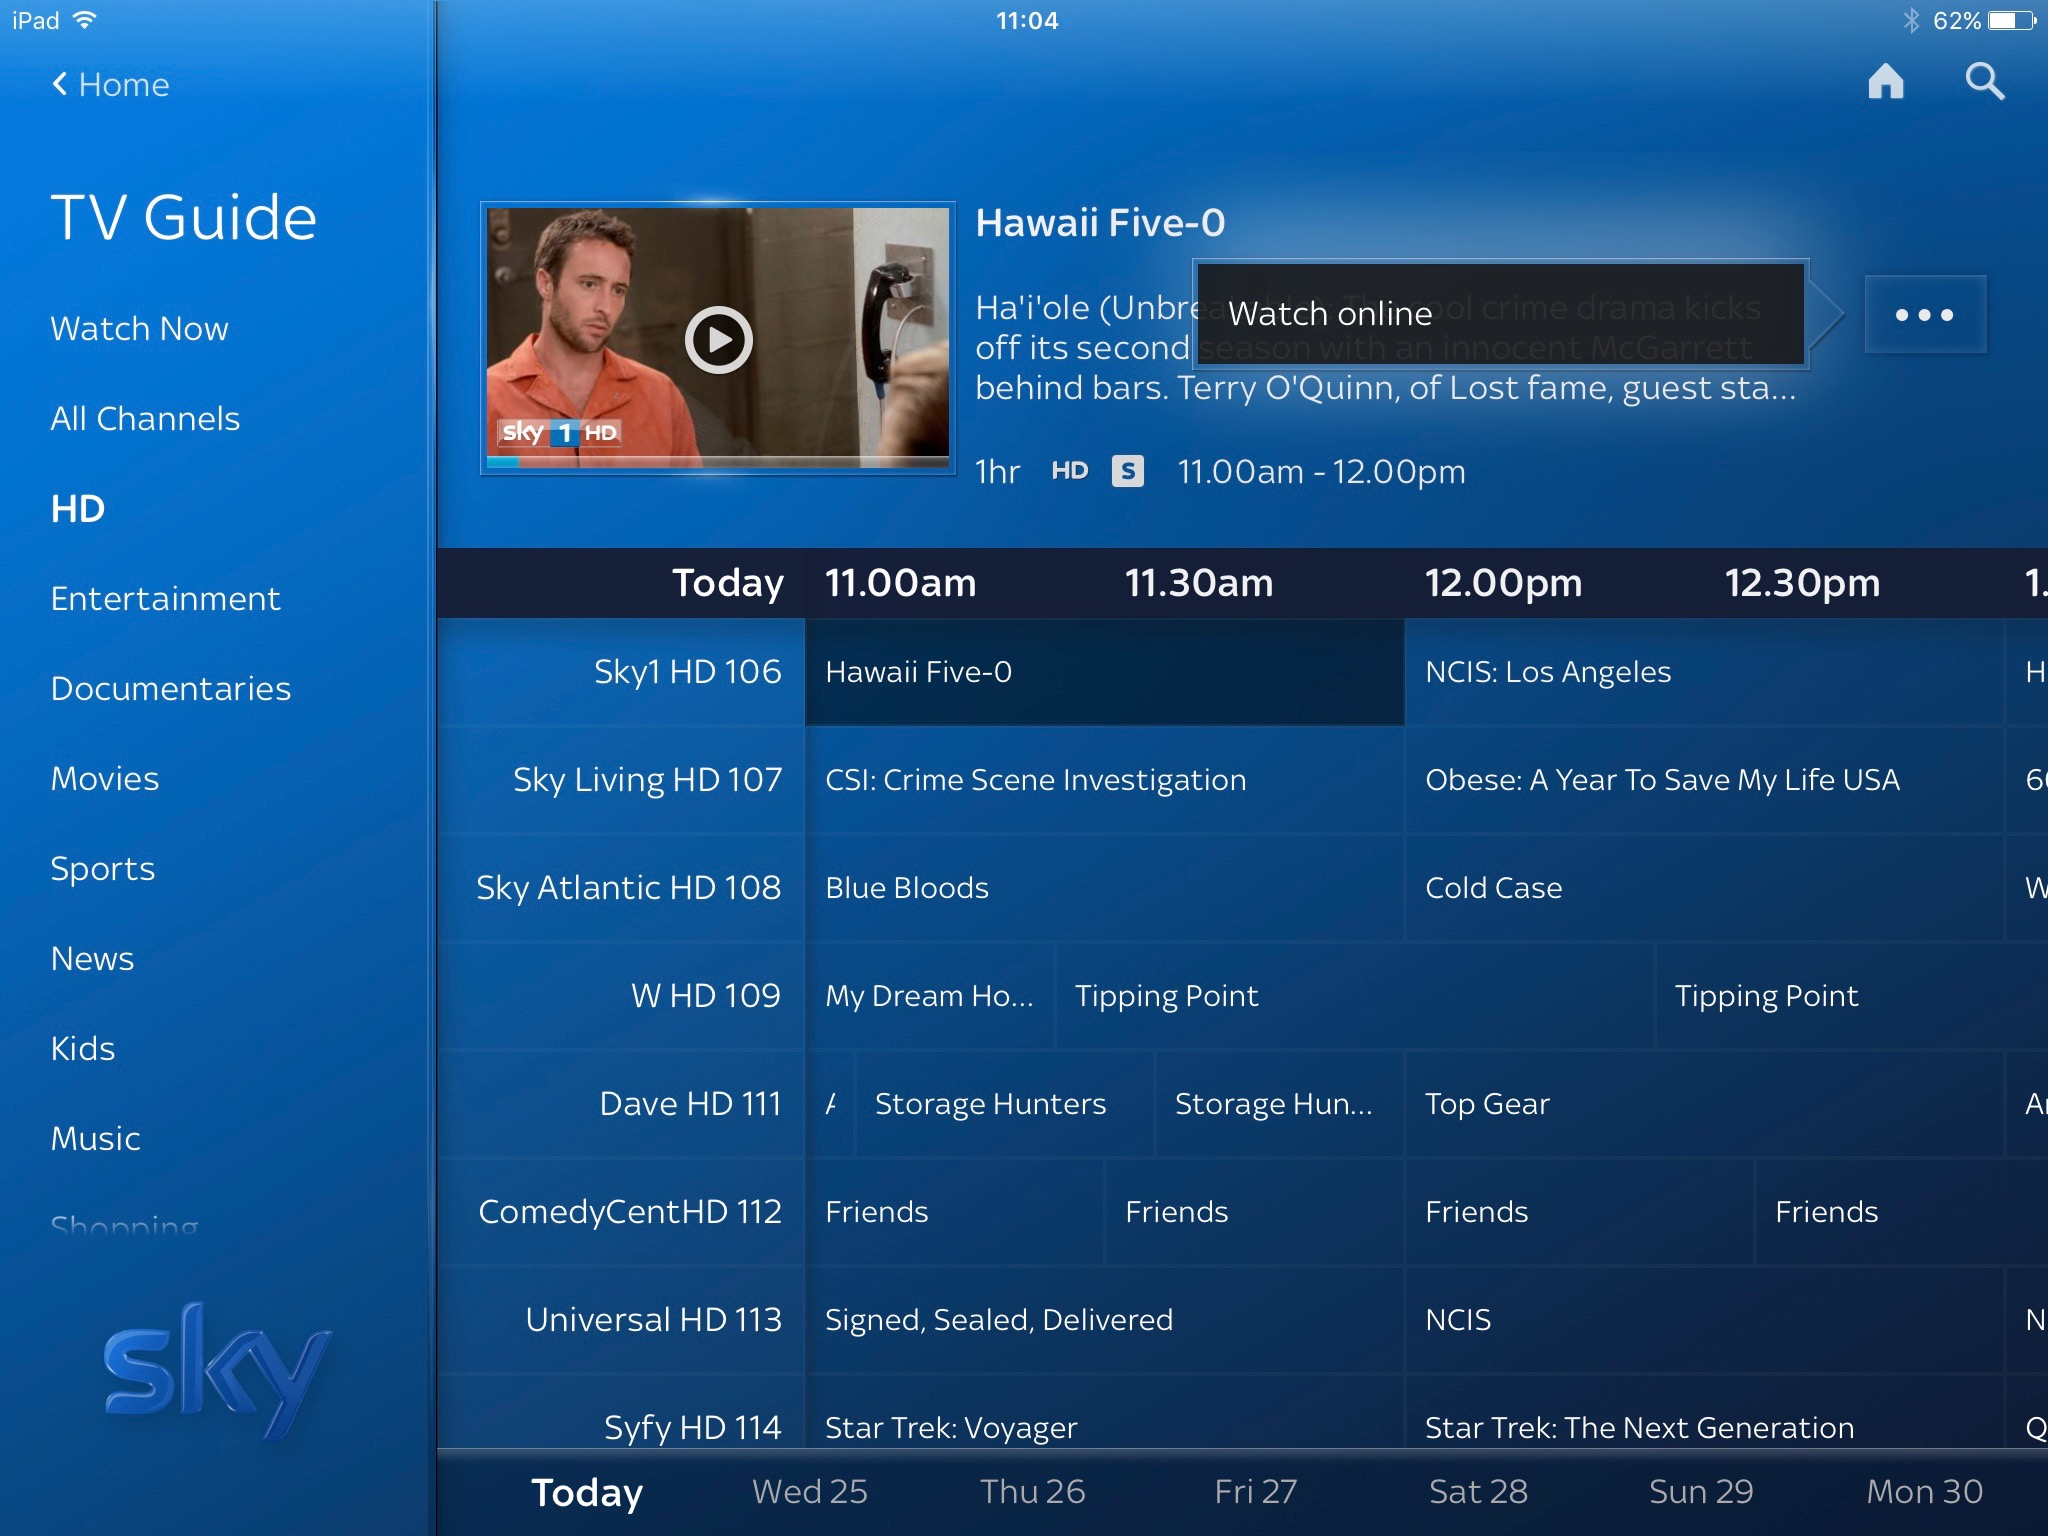 sky sports uk tv guide